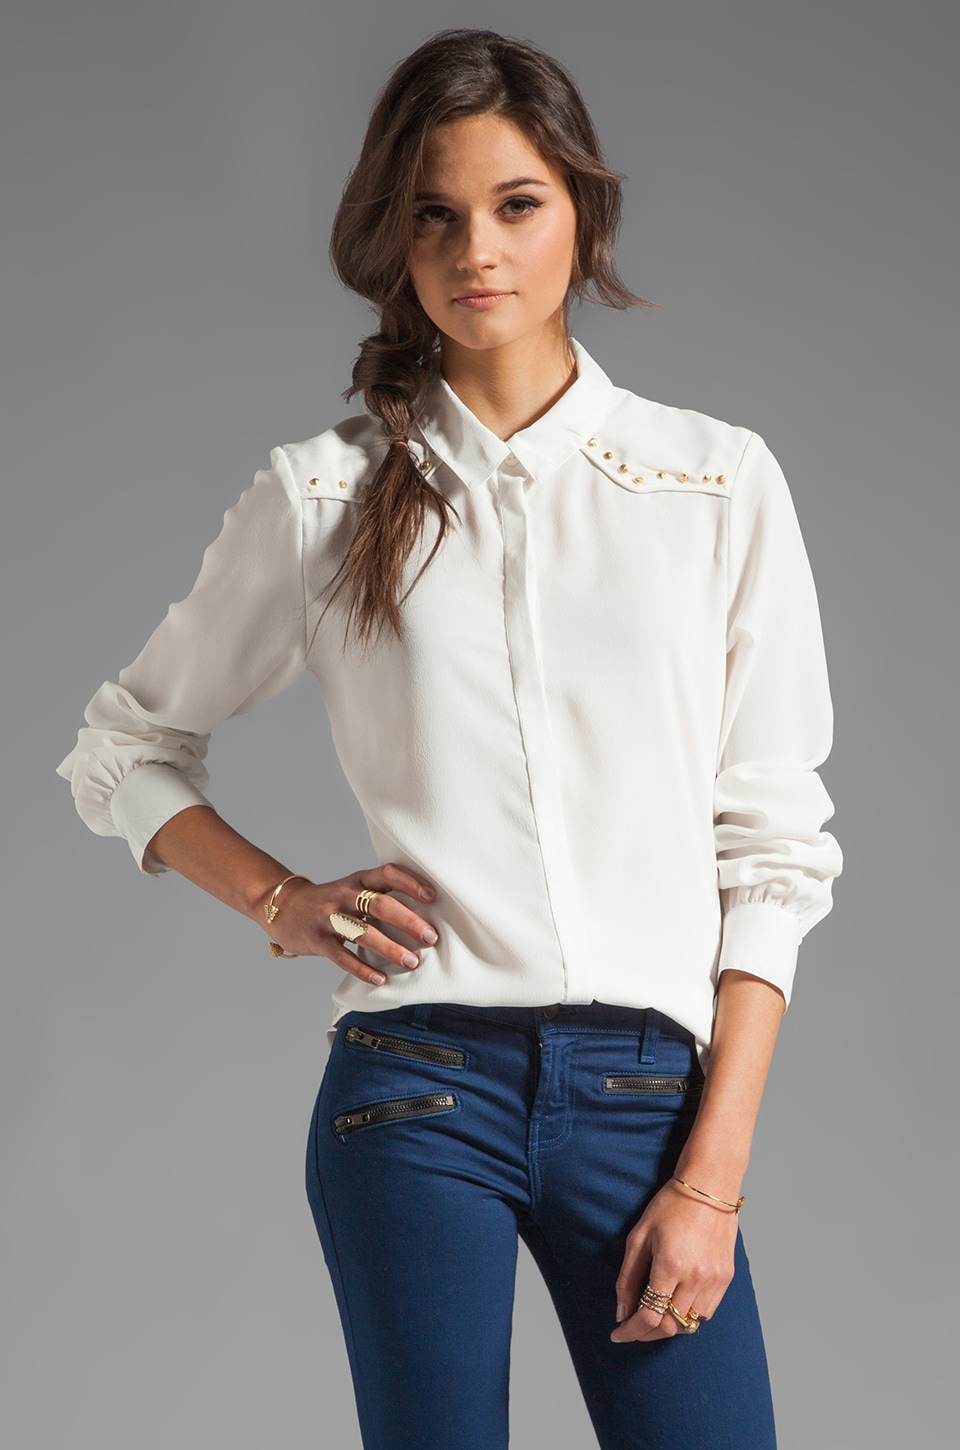 Sanctuary Dainty Cowgirl Top in Ivory